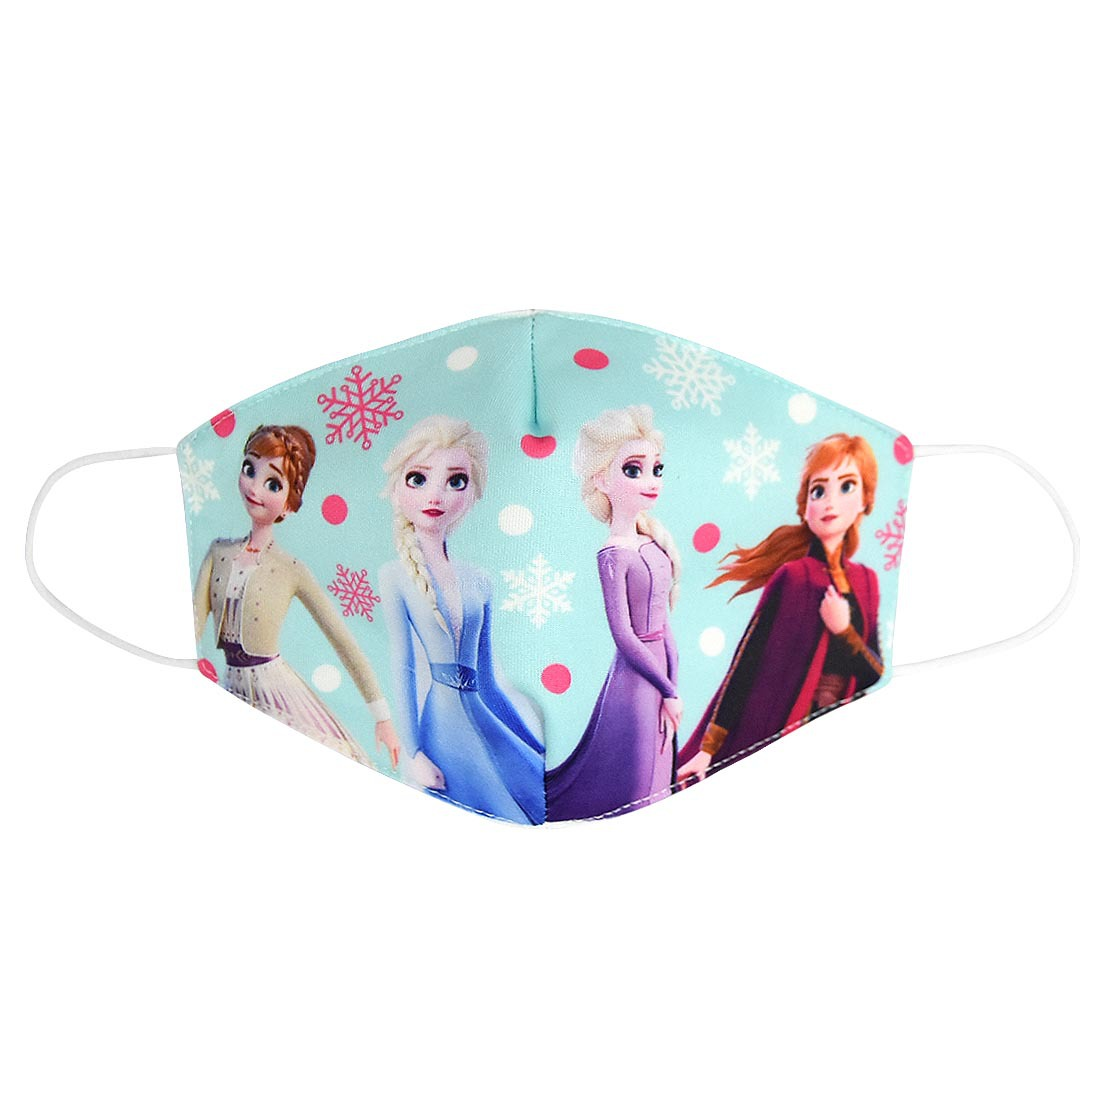 Cartoon Print Boys Girls Dustproof Printed Masks For Adult And Kids Face Mouth Mask 7